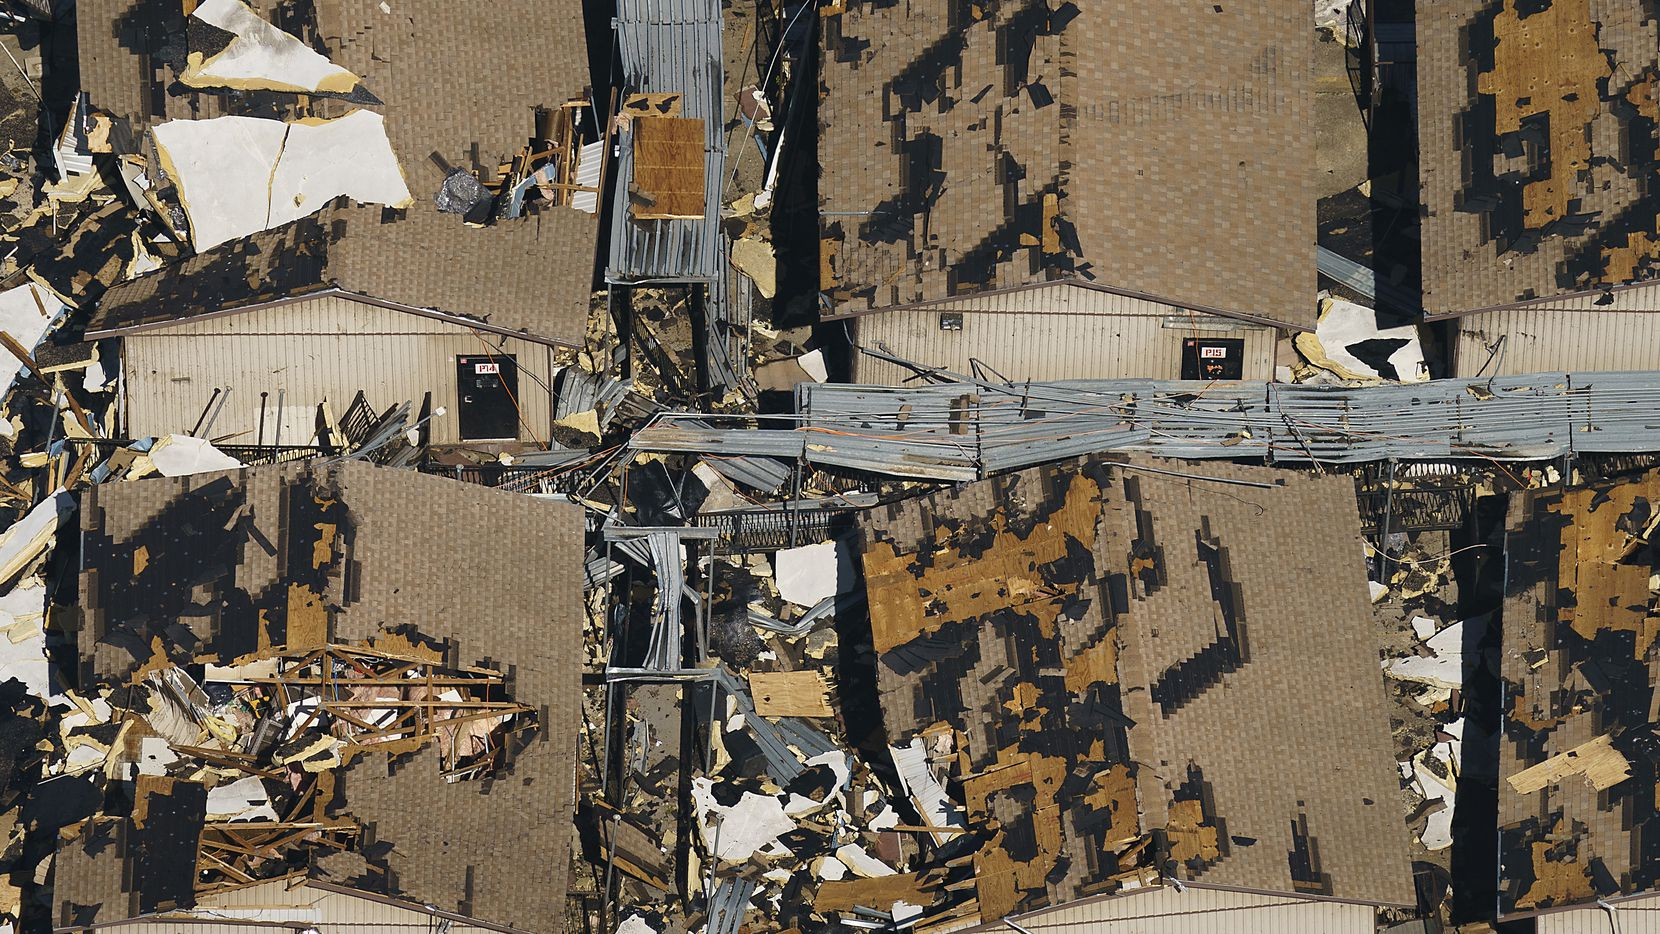 Temporary classroom are seen buried in rubble at Thomas Jefferson HIgh School in an aerial view of tornado damage on Monday, Oct. 21, 2019, in Dallas.